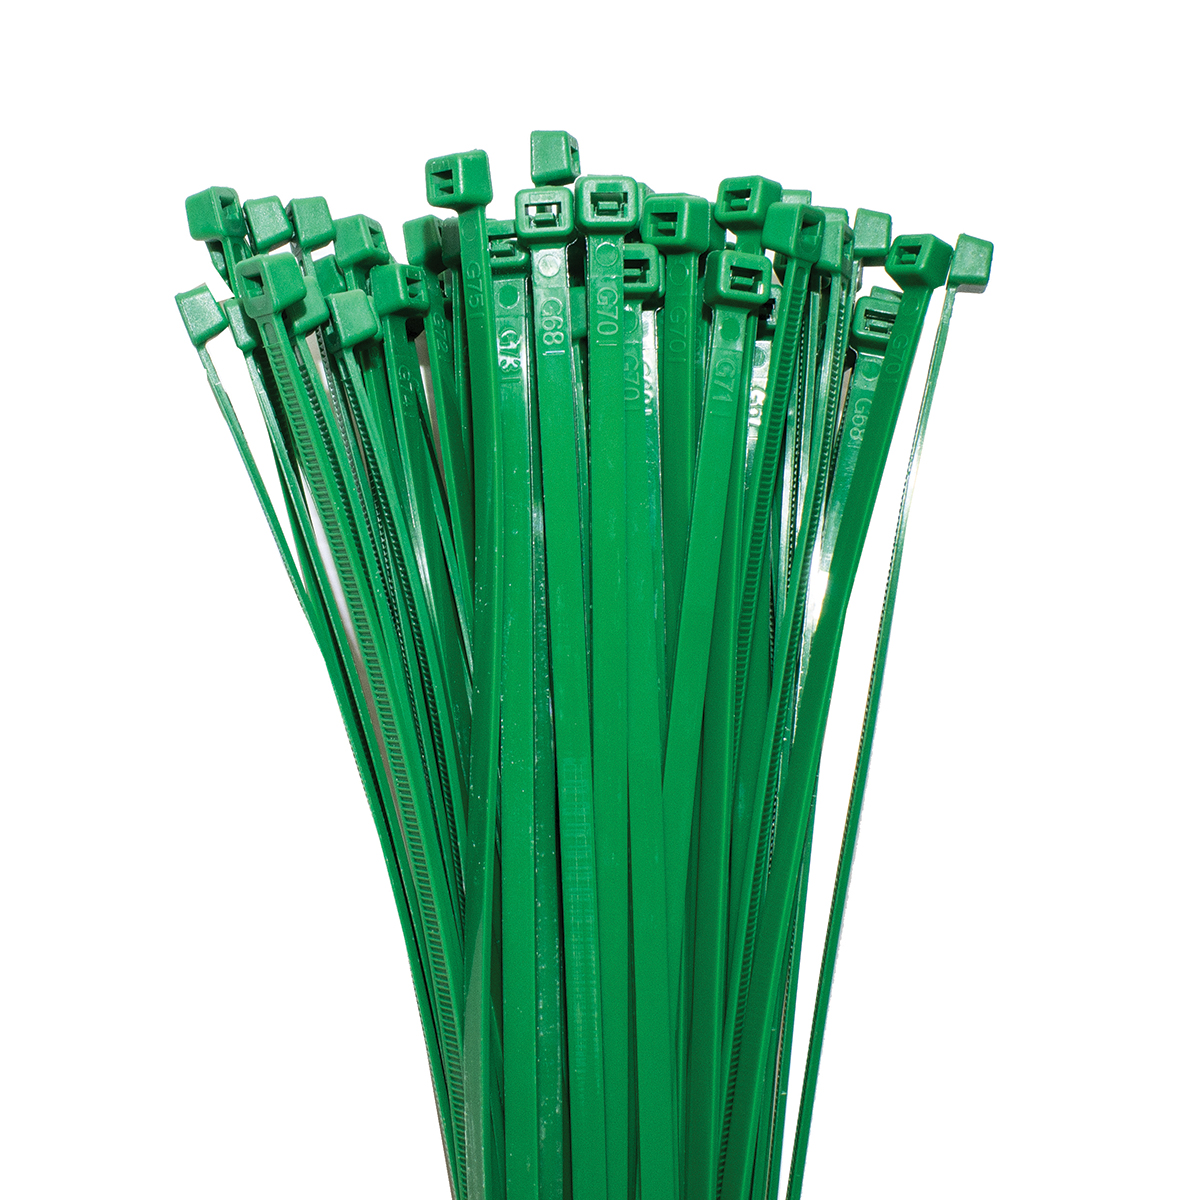 ed2212cb4d64 Cable Ties, Green, 200mm x 4.8mm, 25 Pack - KT Cables